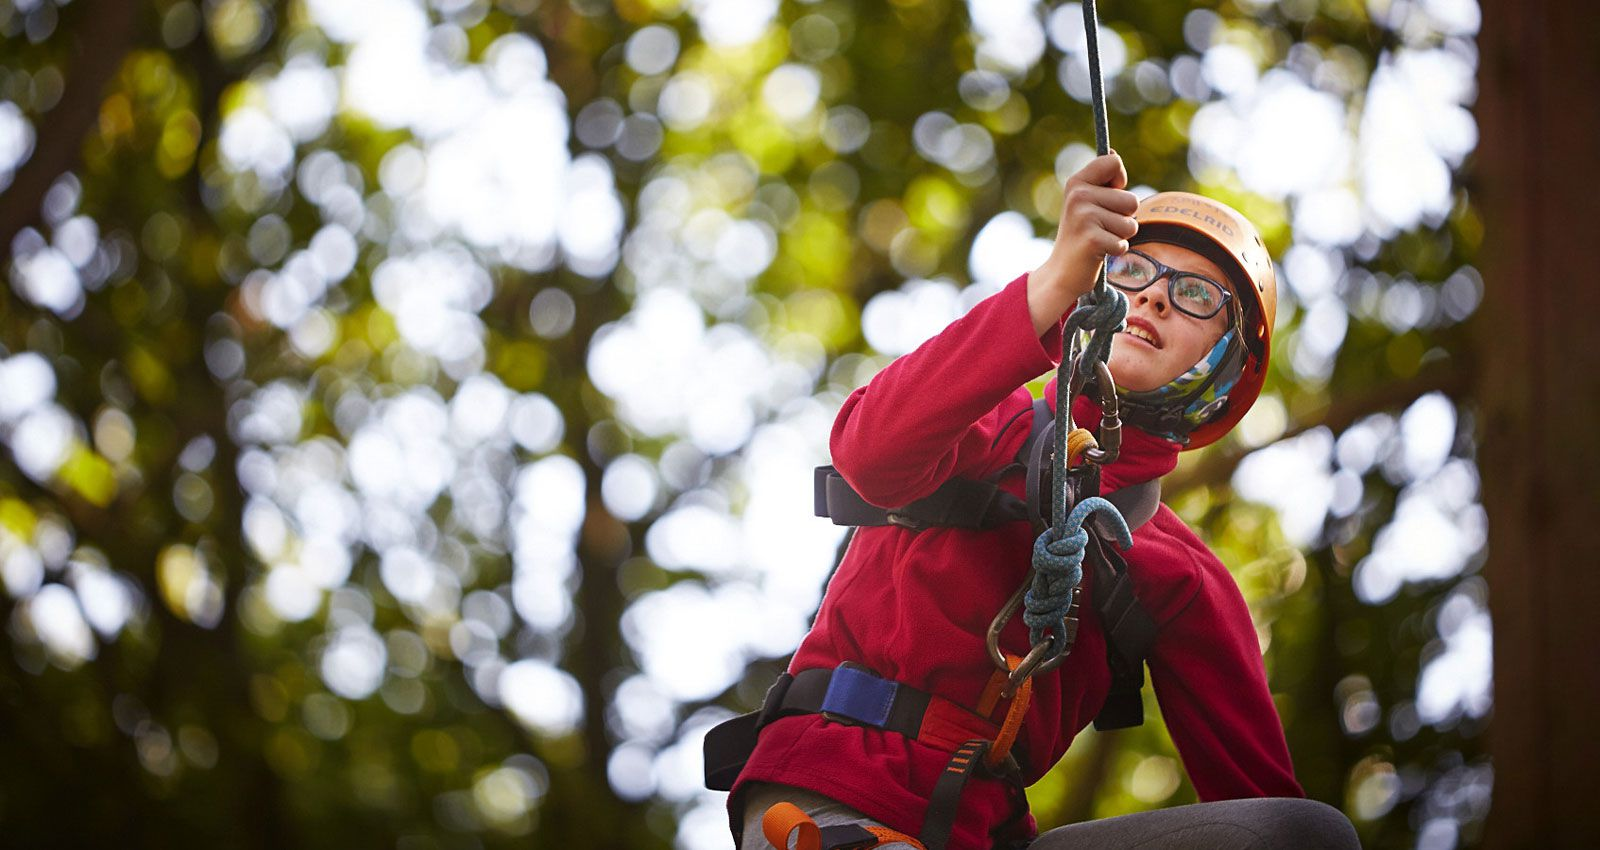 PGL Adventure Holidays - Multi Activity Holidays across the UK and France - 'First Timer' Multi Activity Holidays